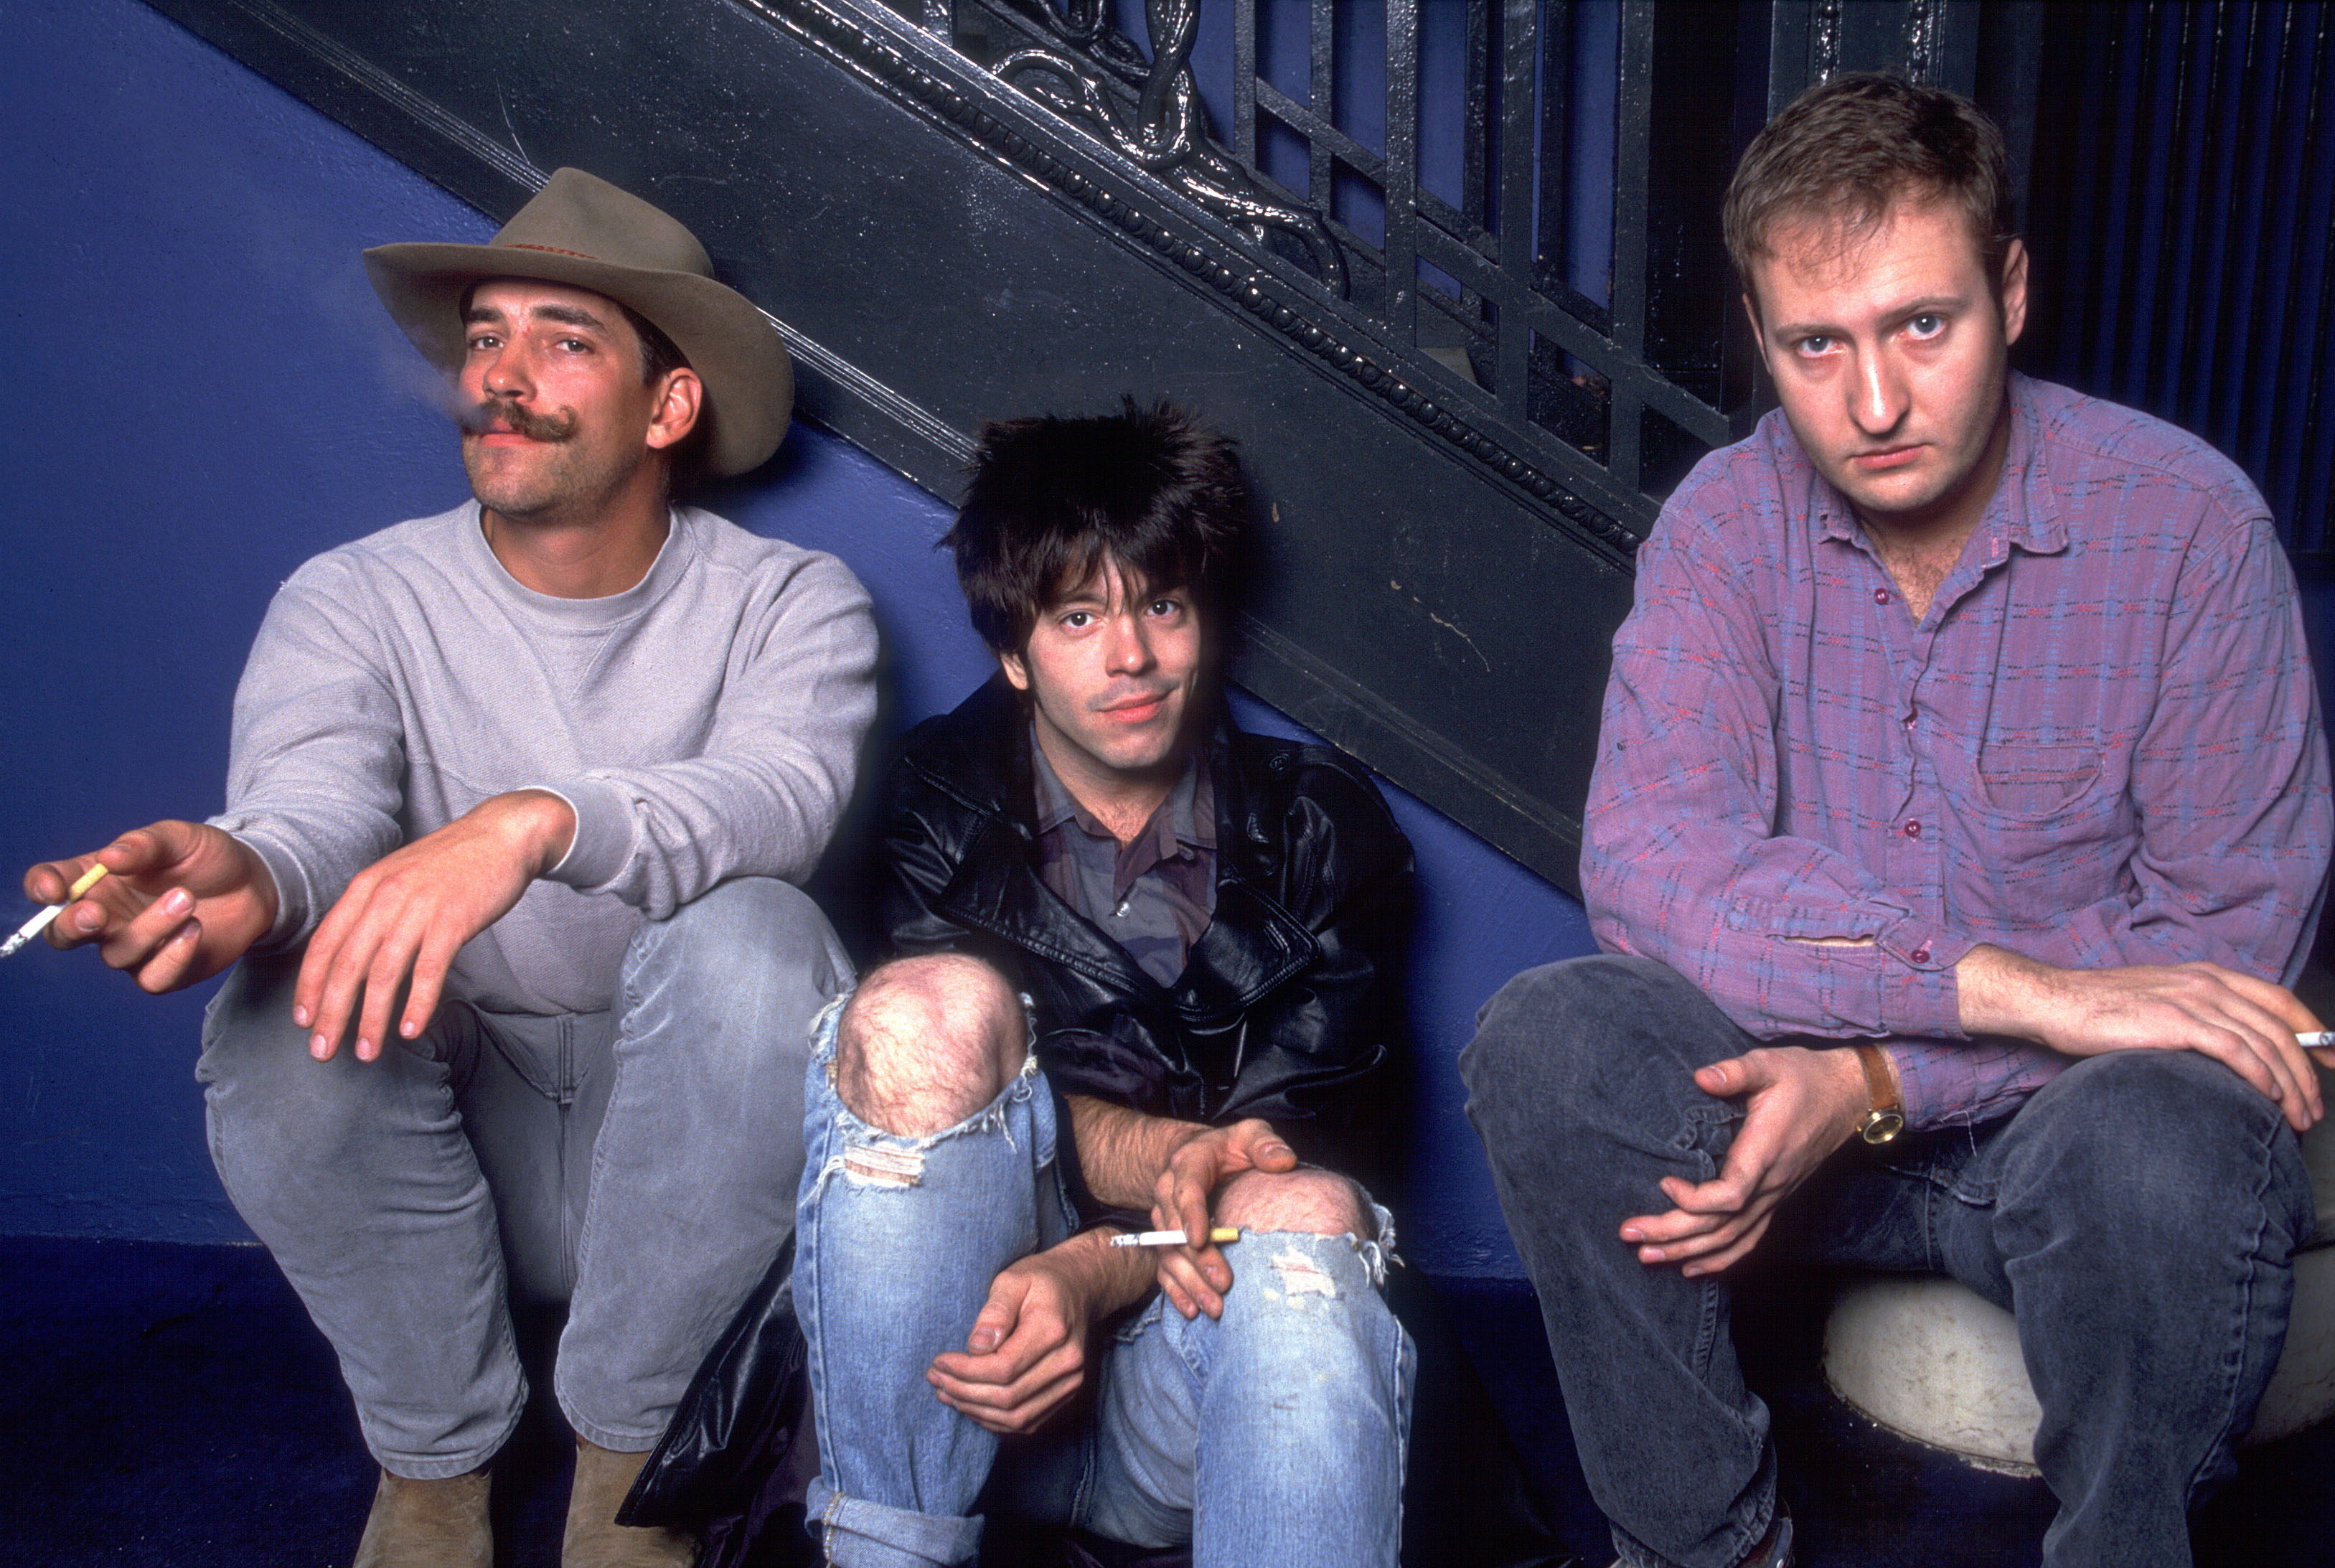 Greg Norton, Grant Hart and Bob Mould of Husker Du on 10/10/87 in Chicago, Il.